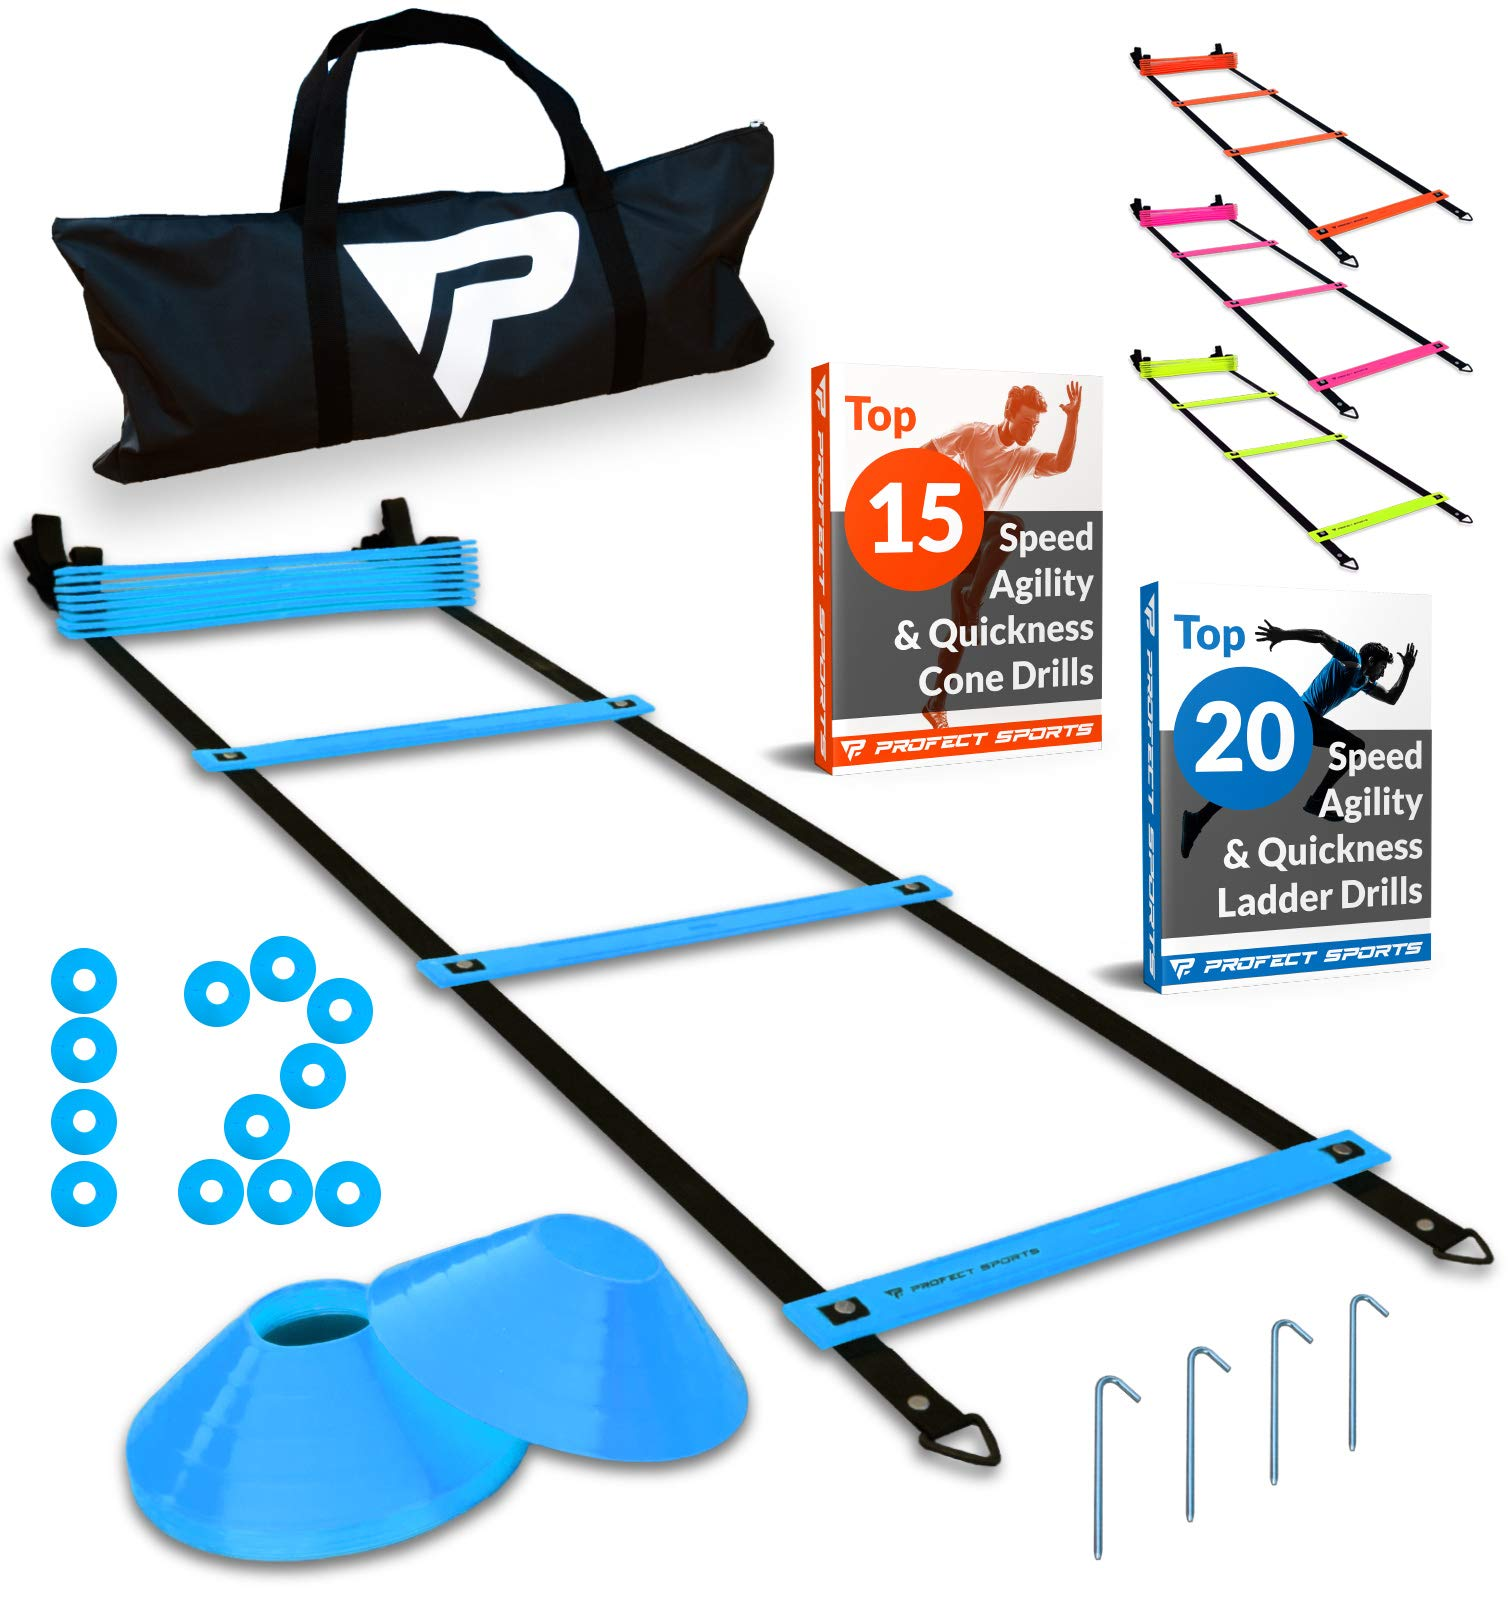 Pro Agility Ladder and Cones – 15 ft Fixed-Rung Speed Ladder with 12 Disc Cones for Soccer, Football, Sports, Exercise…